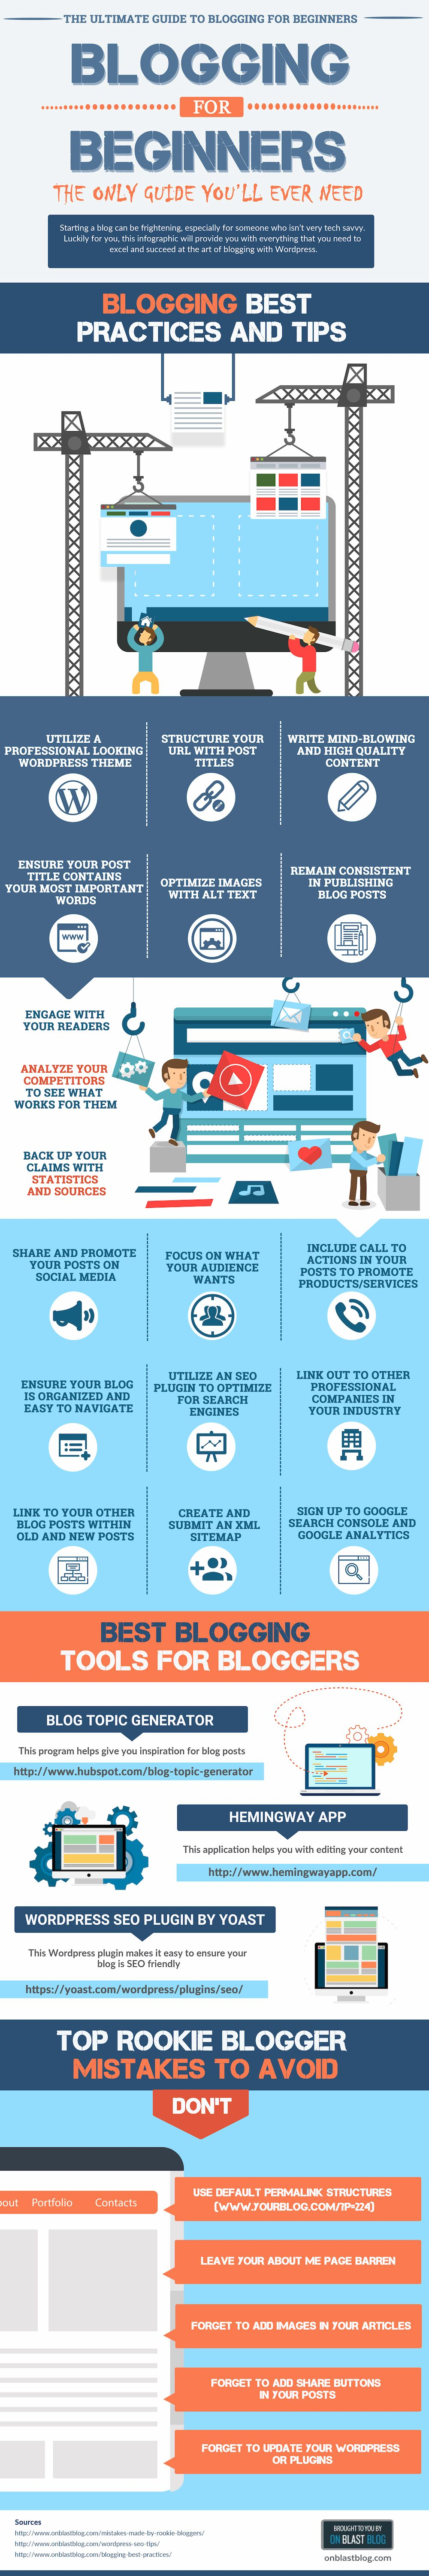 The Beginner's Guide to Blogging Best Practices - infographic